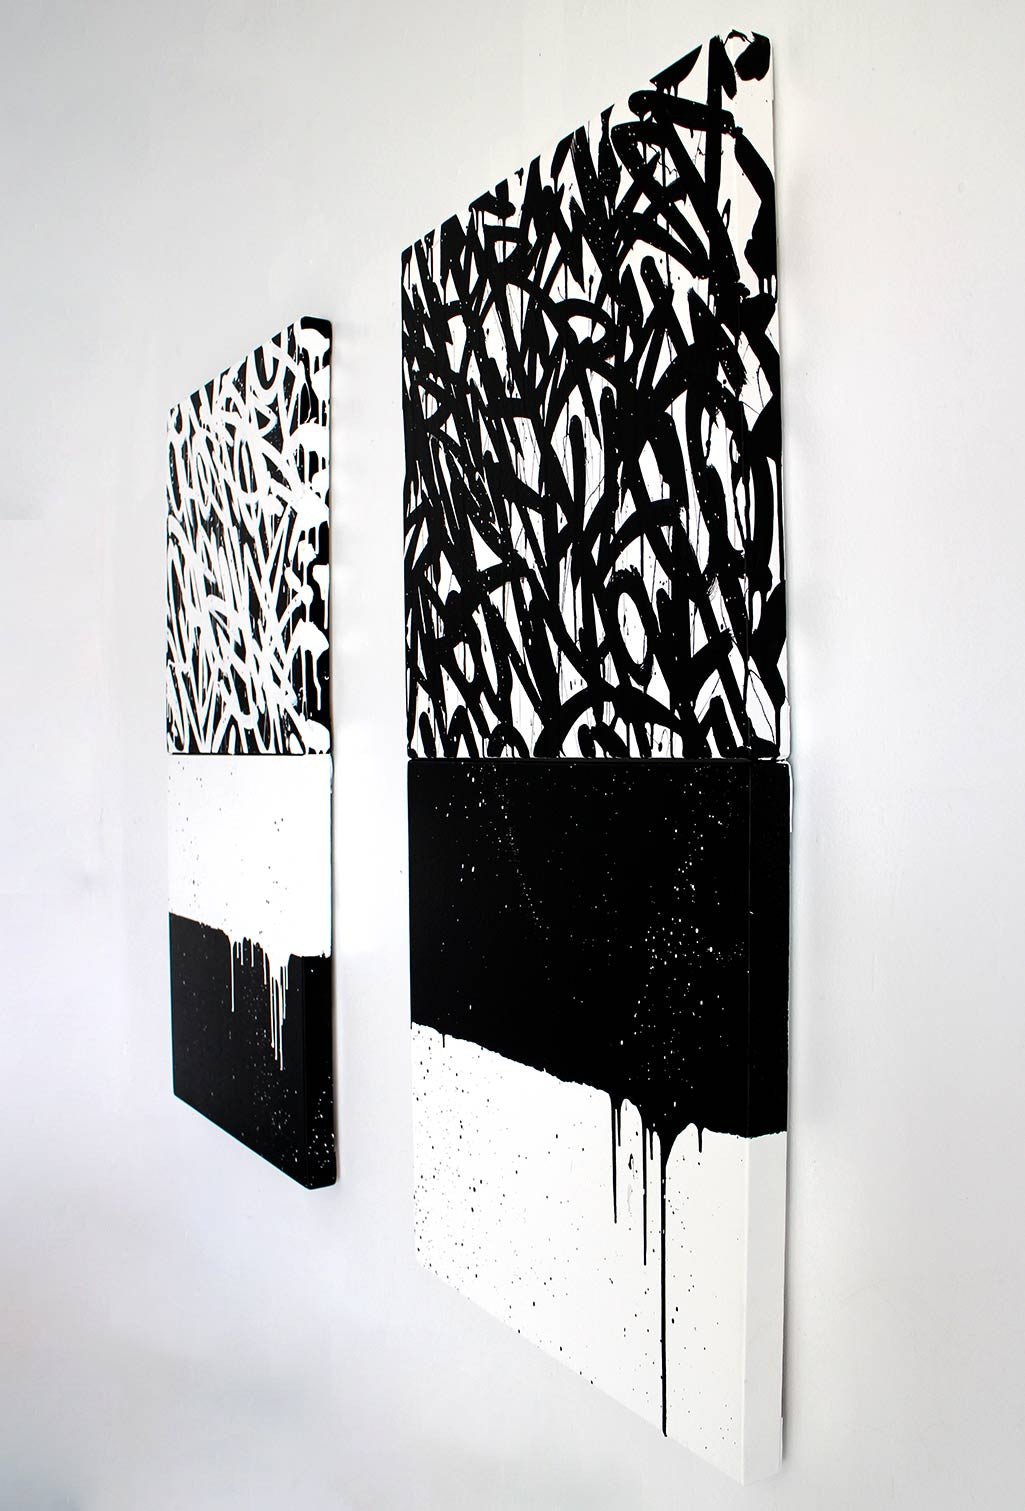 STACKS (LIGHT) - 22X44 Diptych - Bisco Smith